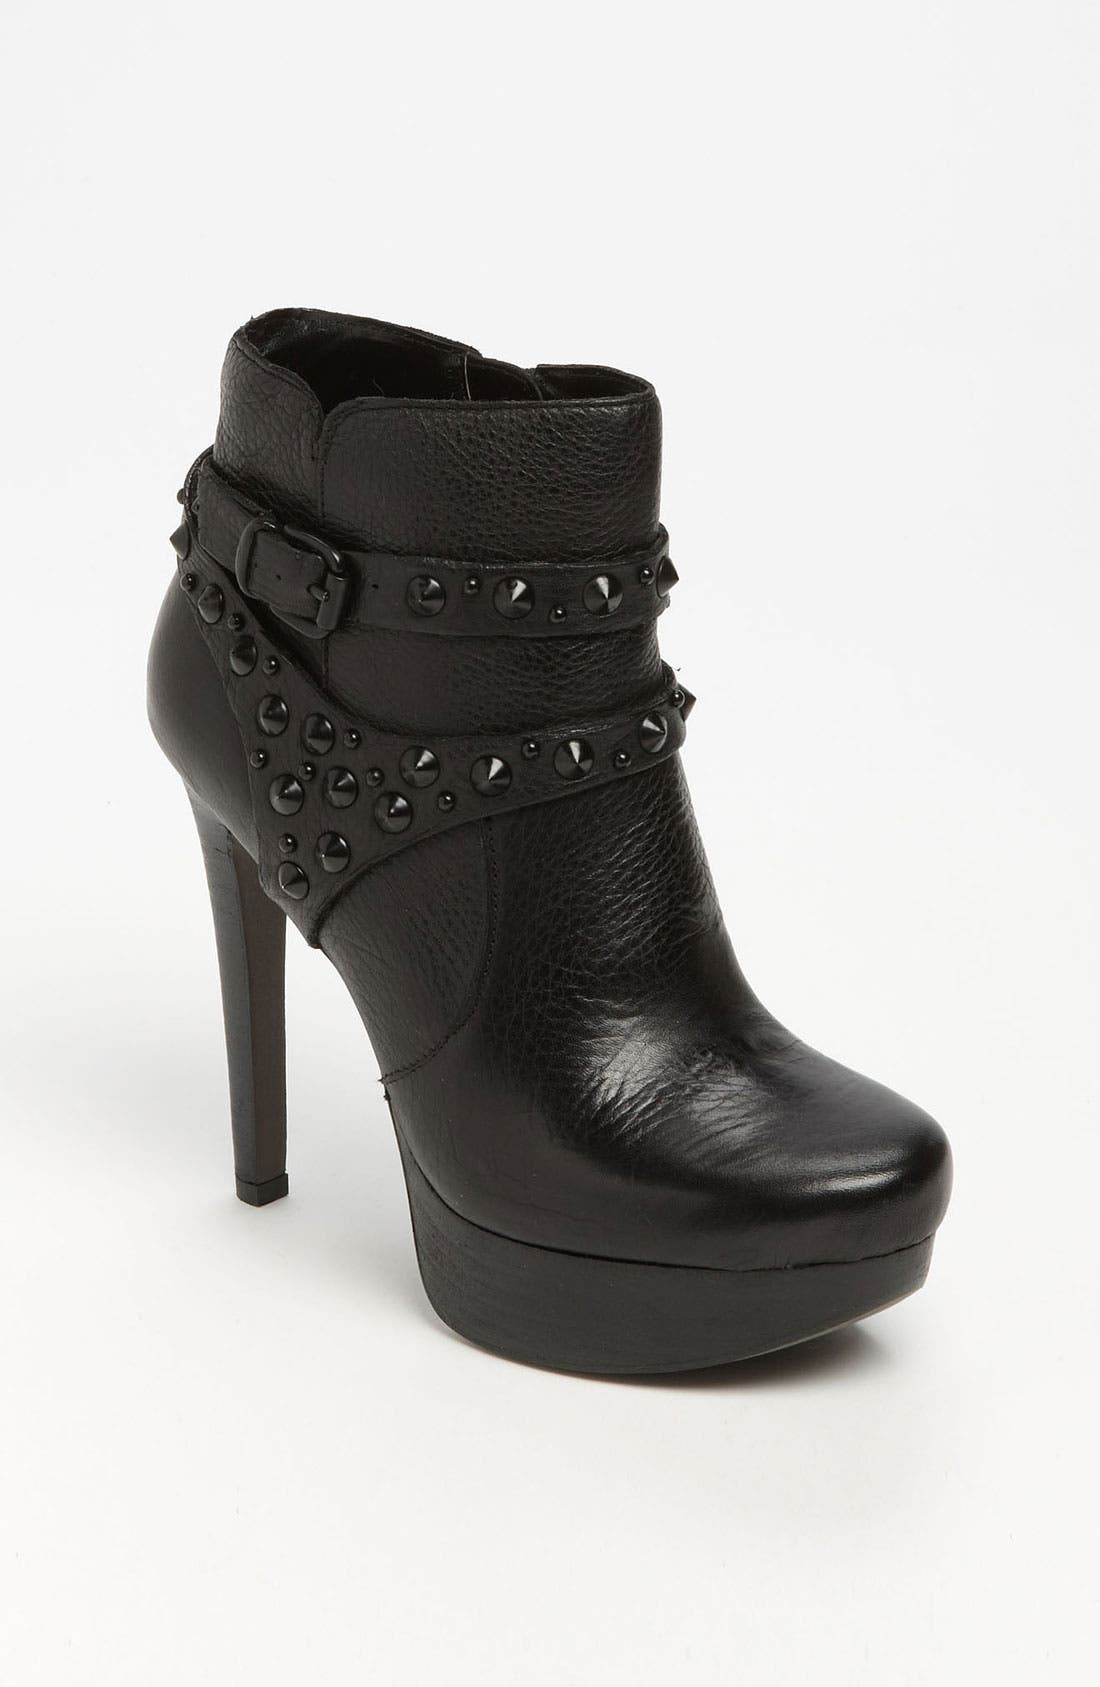 Alternate Image 1 Selected - Fergie 'Latta' Boot